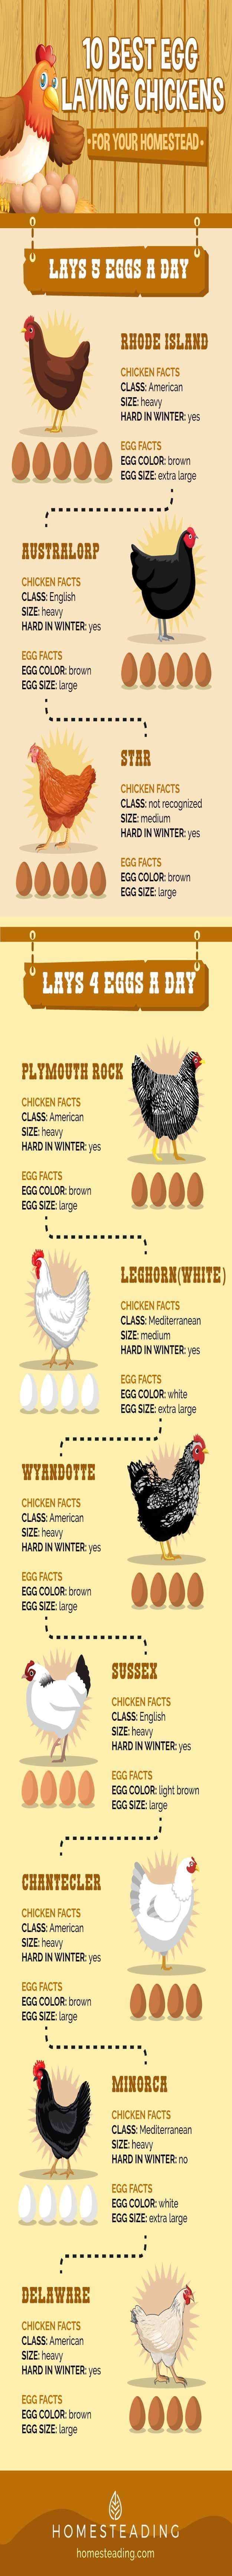 Top 10 Chicken Breeds   The Best Egg Laying Chickens For Your